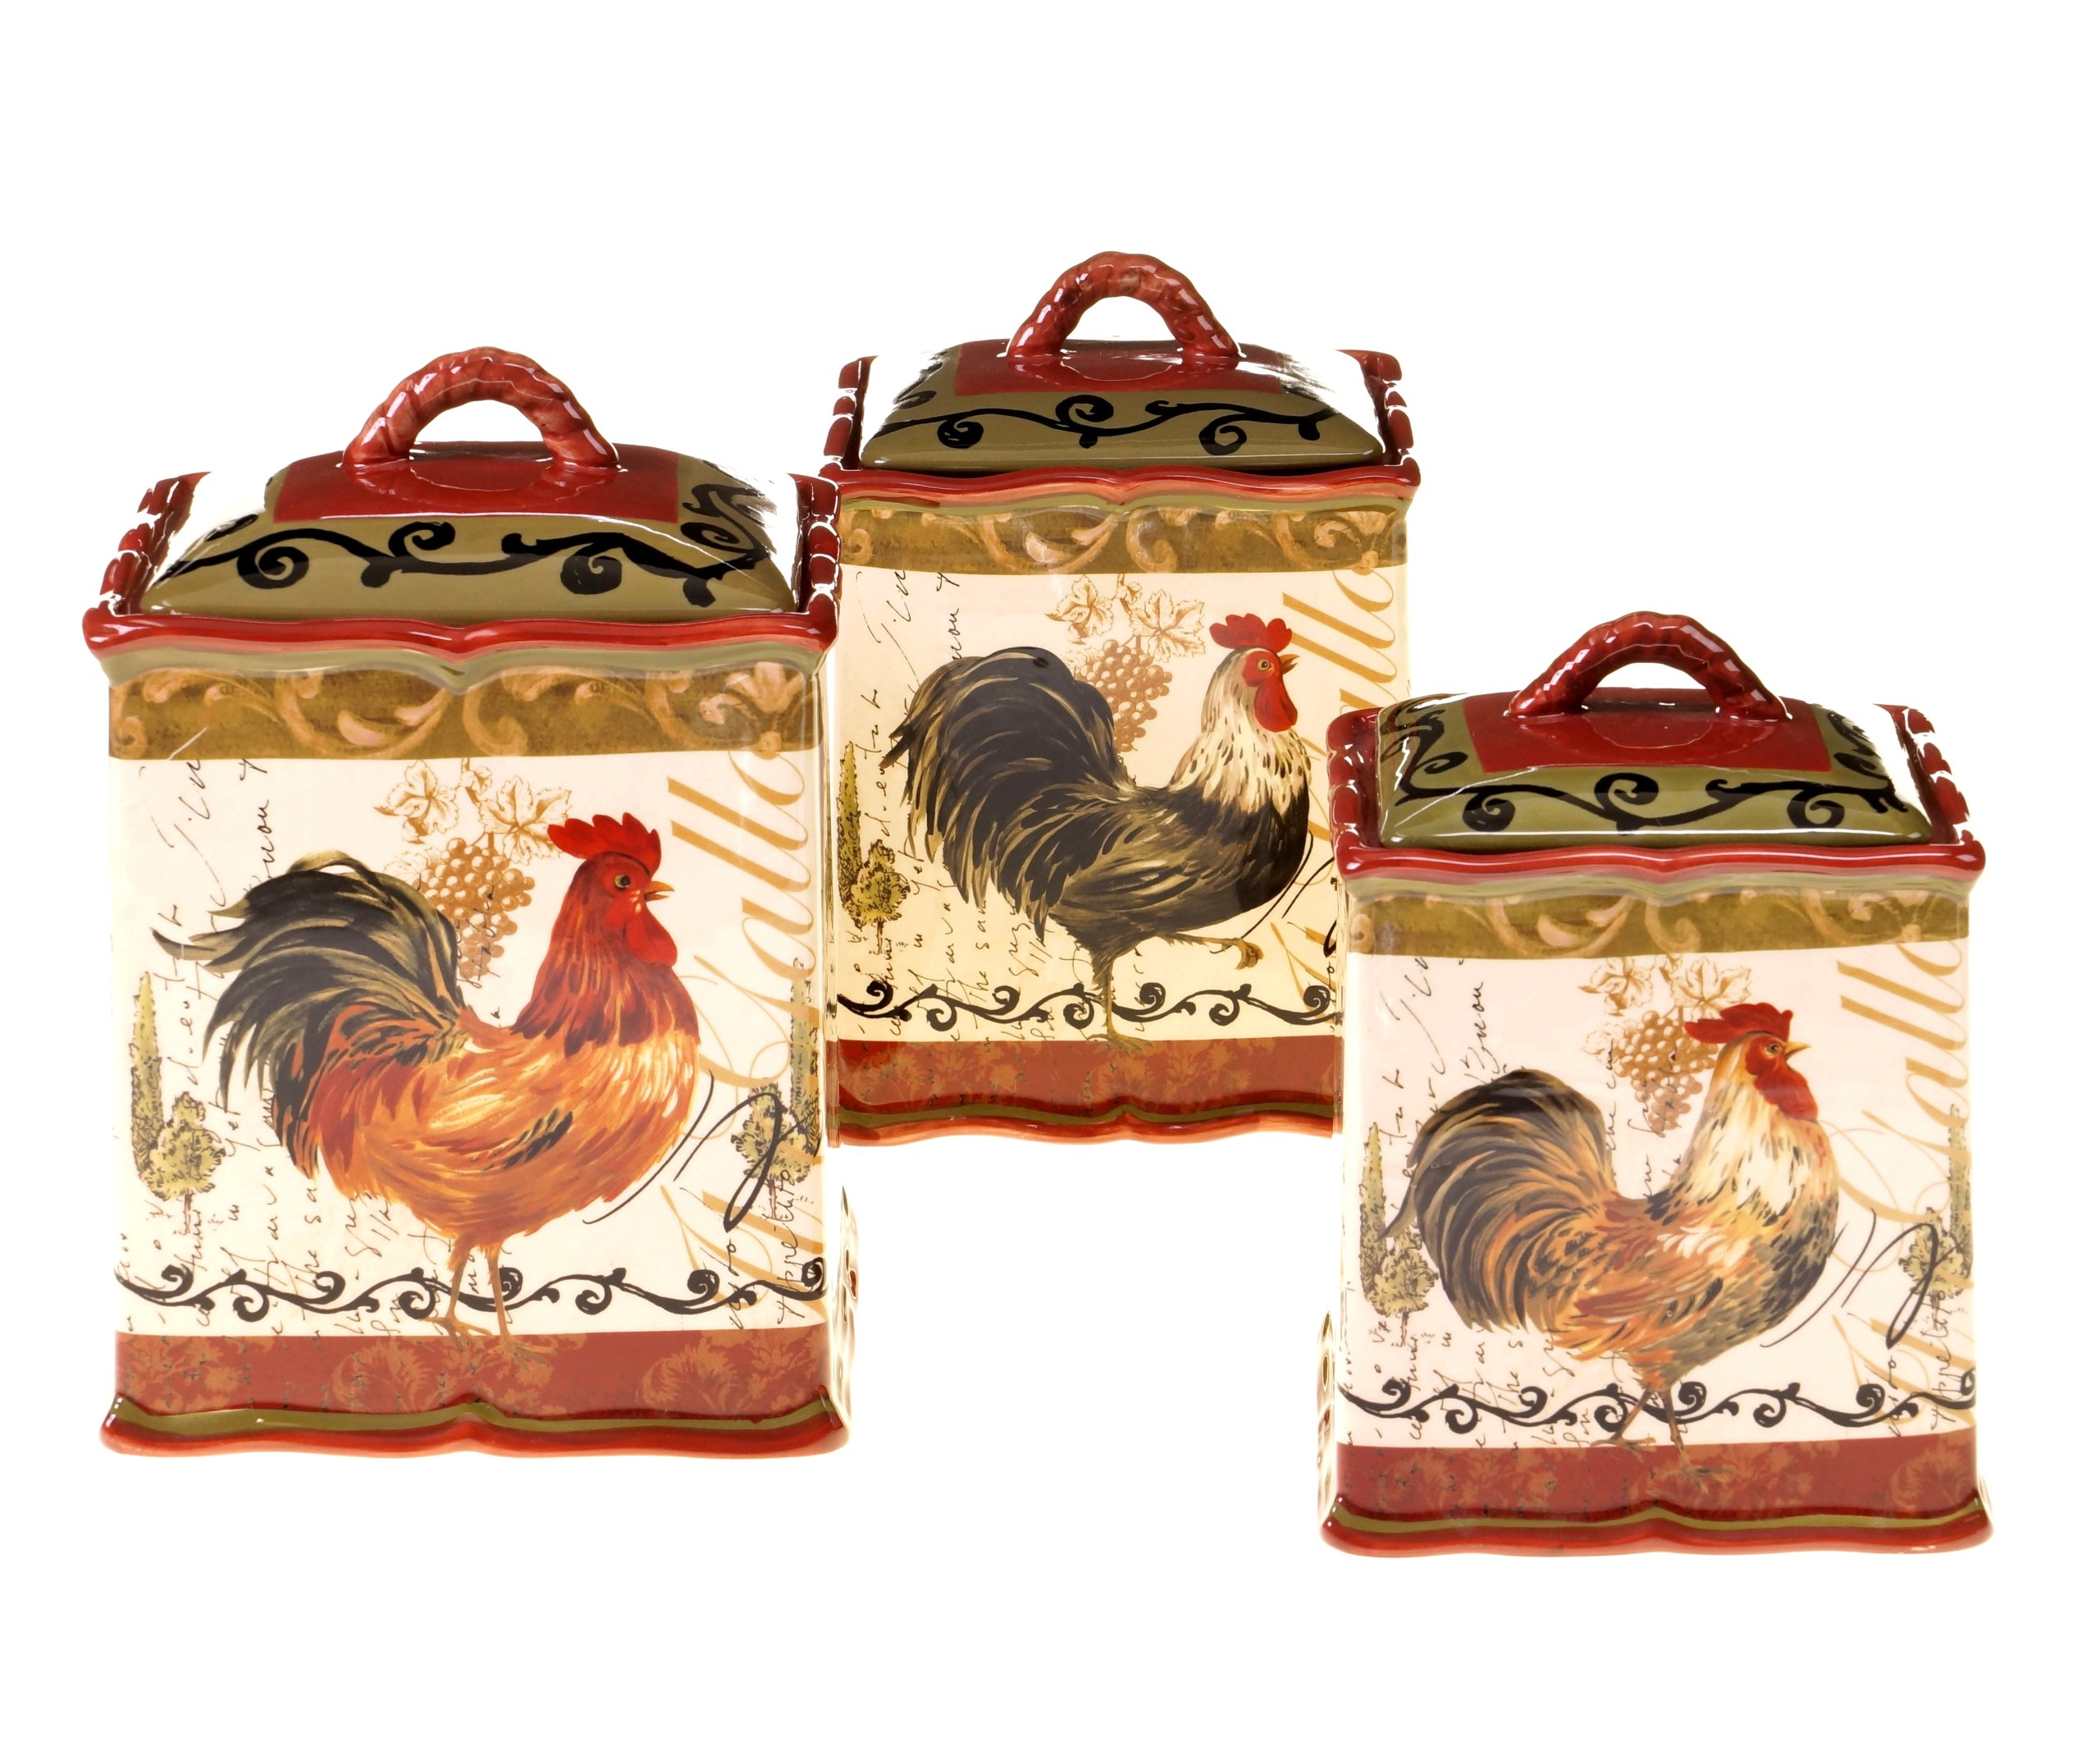 Certified International Tuscan Rooster 3-Piece Canister Set, 72-Ounce, 114-Ounce and 144-Ounce by Certified International